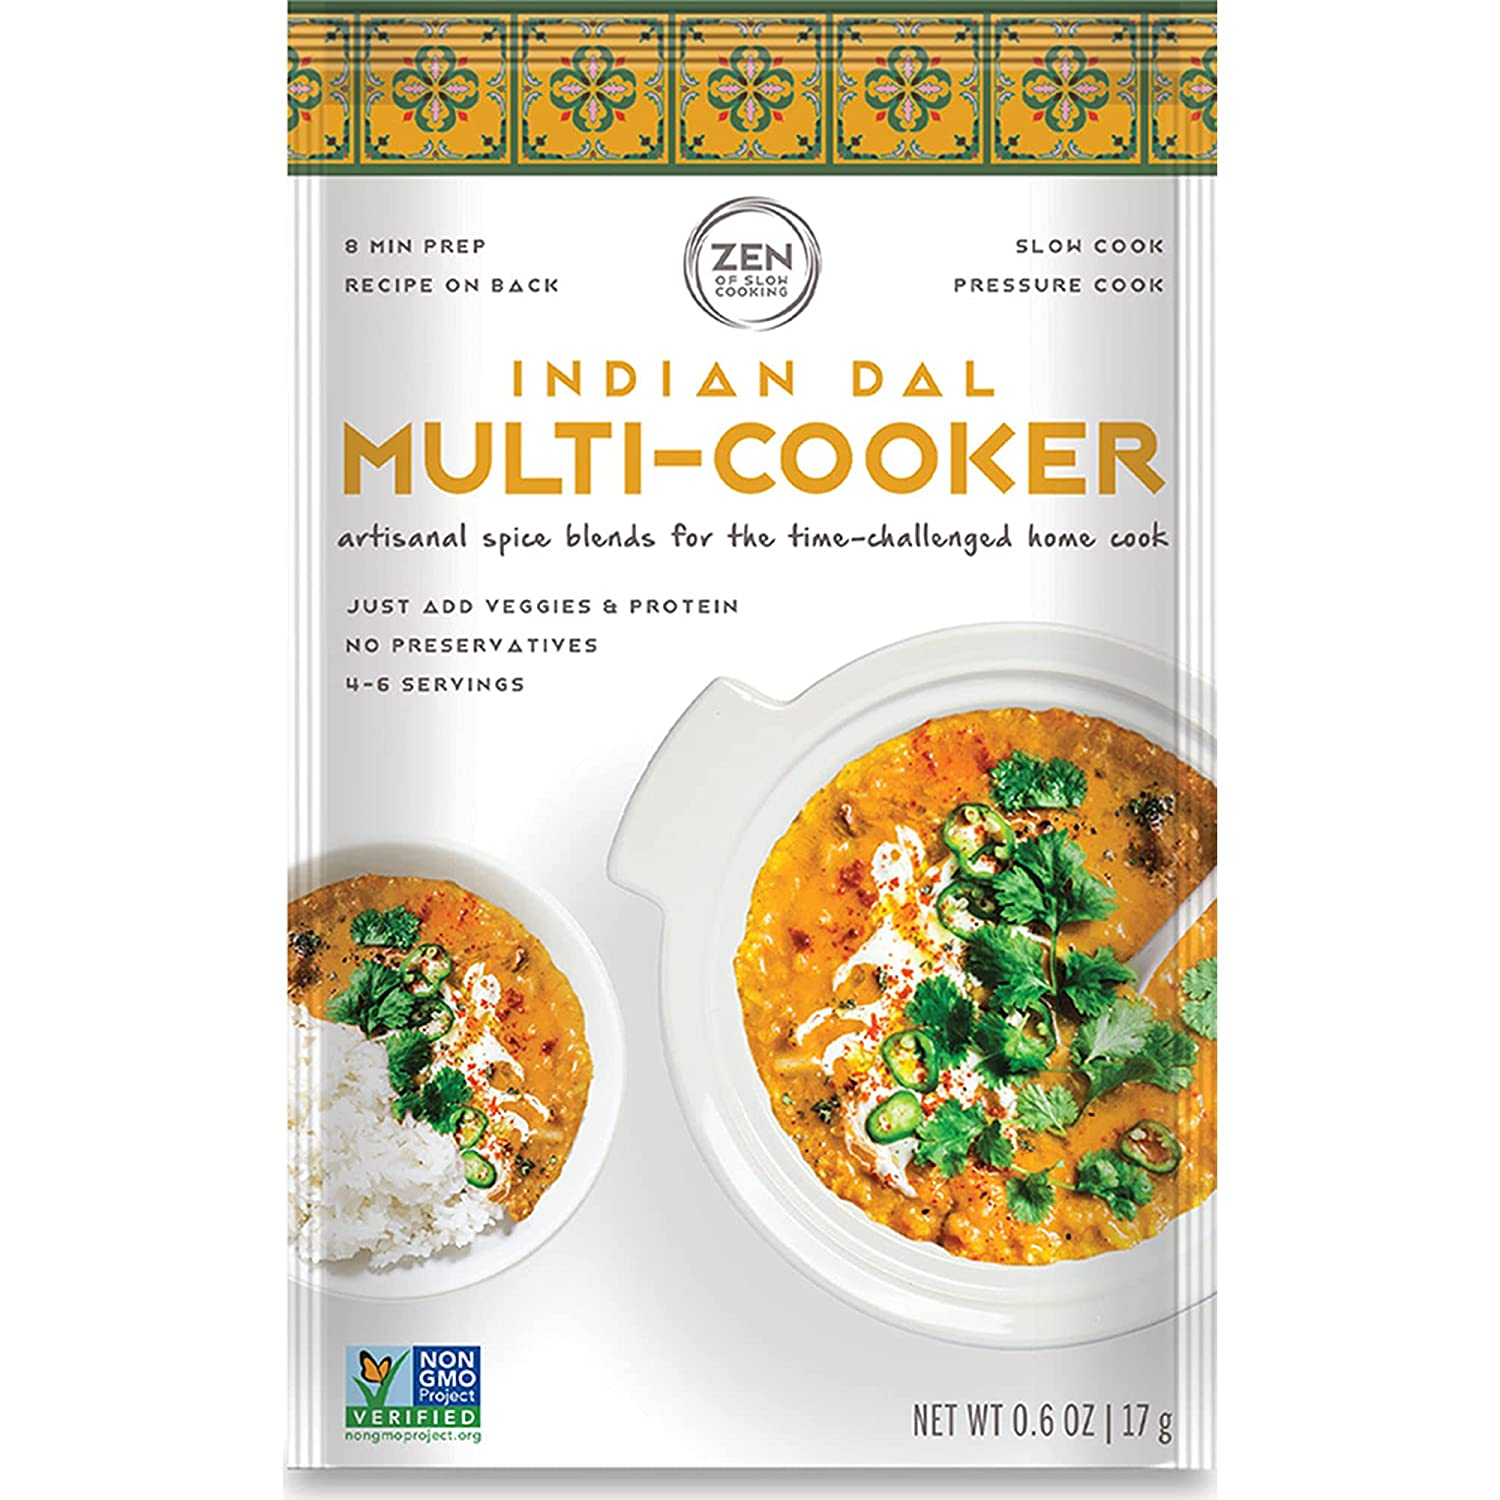 Indian Dal Gourmet Spice Blend Many Max 62% OFF popular brands 6 Seasoning SALT Pouches LOW -